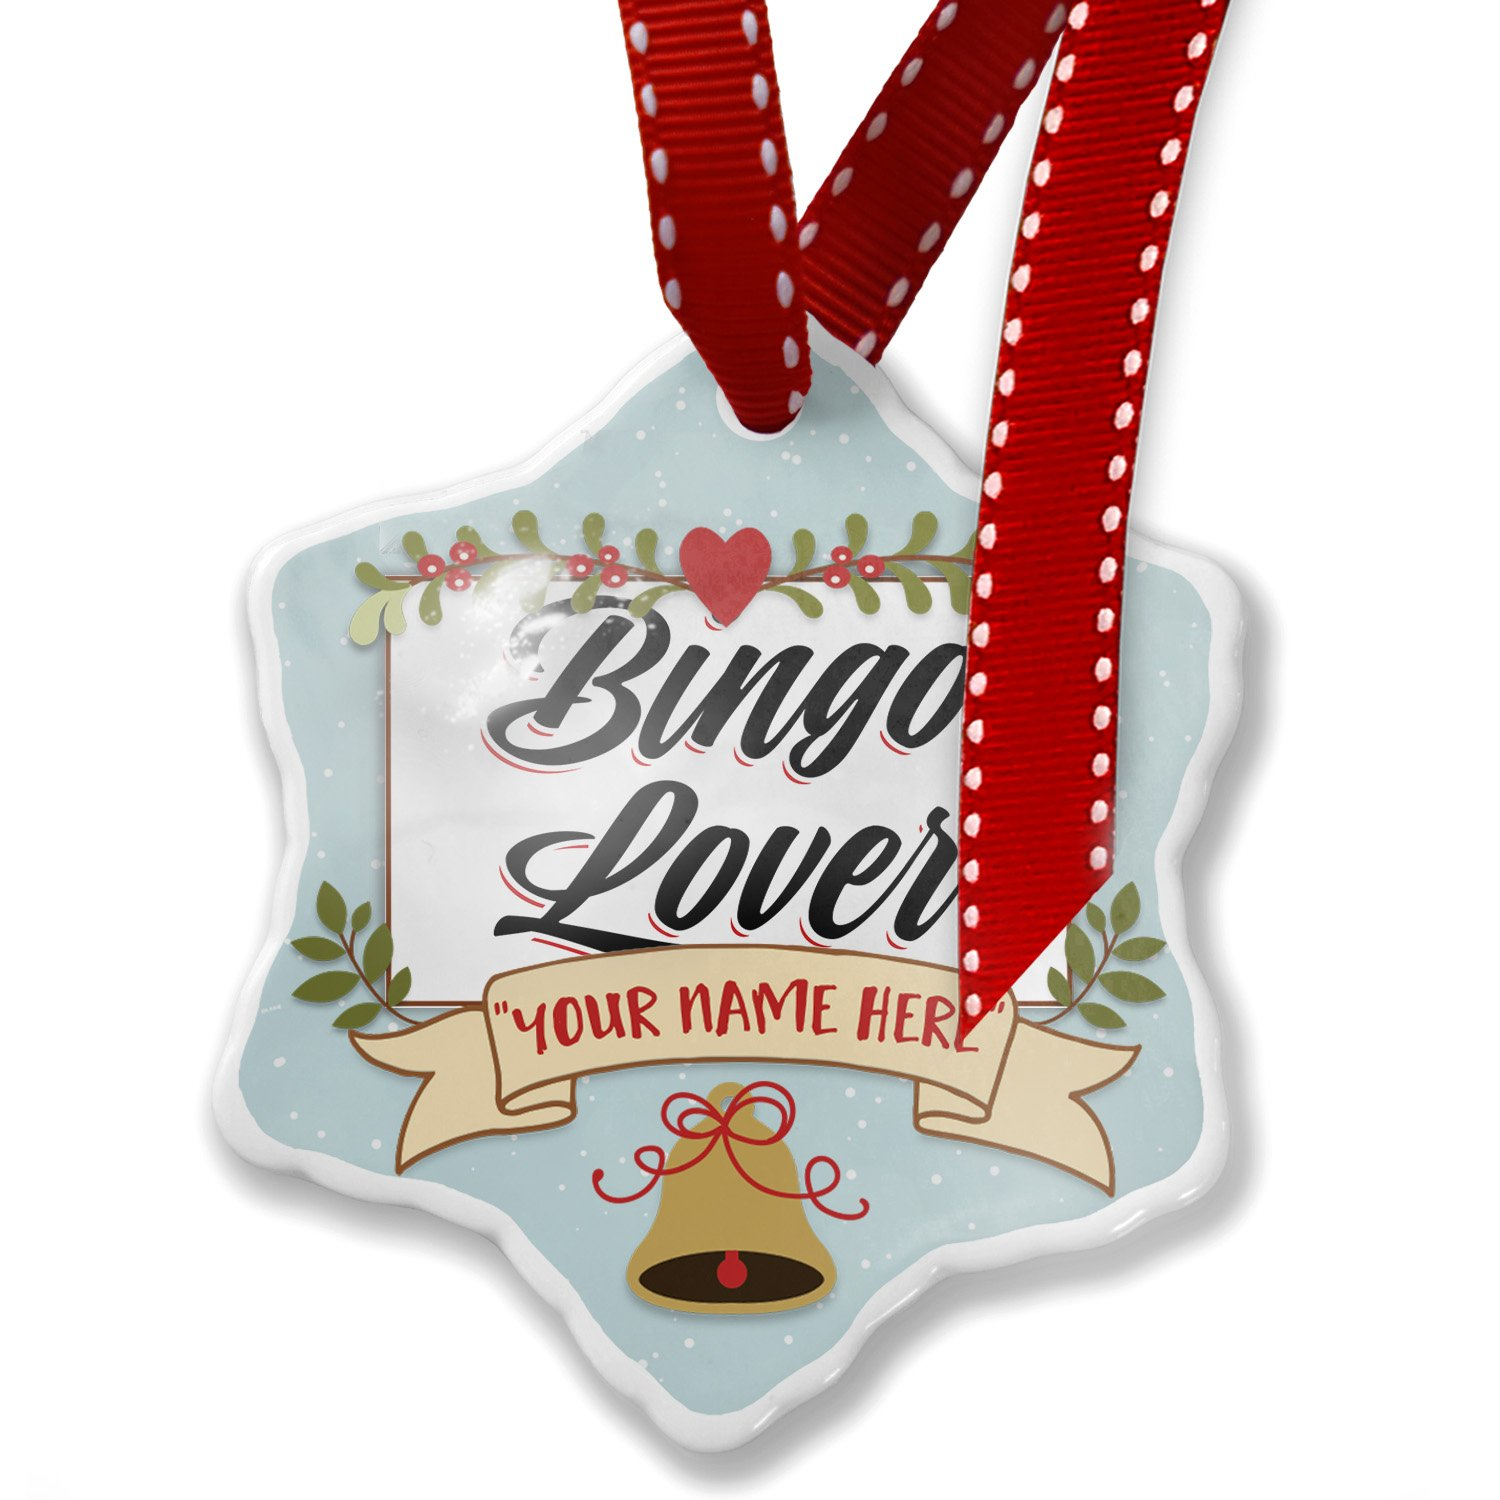 Add Your Own Custom Name, Vintage Lettering Bingo Lover Christmas Ornament NEONBLOND by NEONBLOND